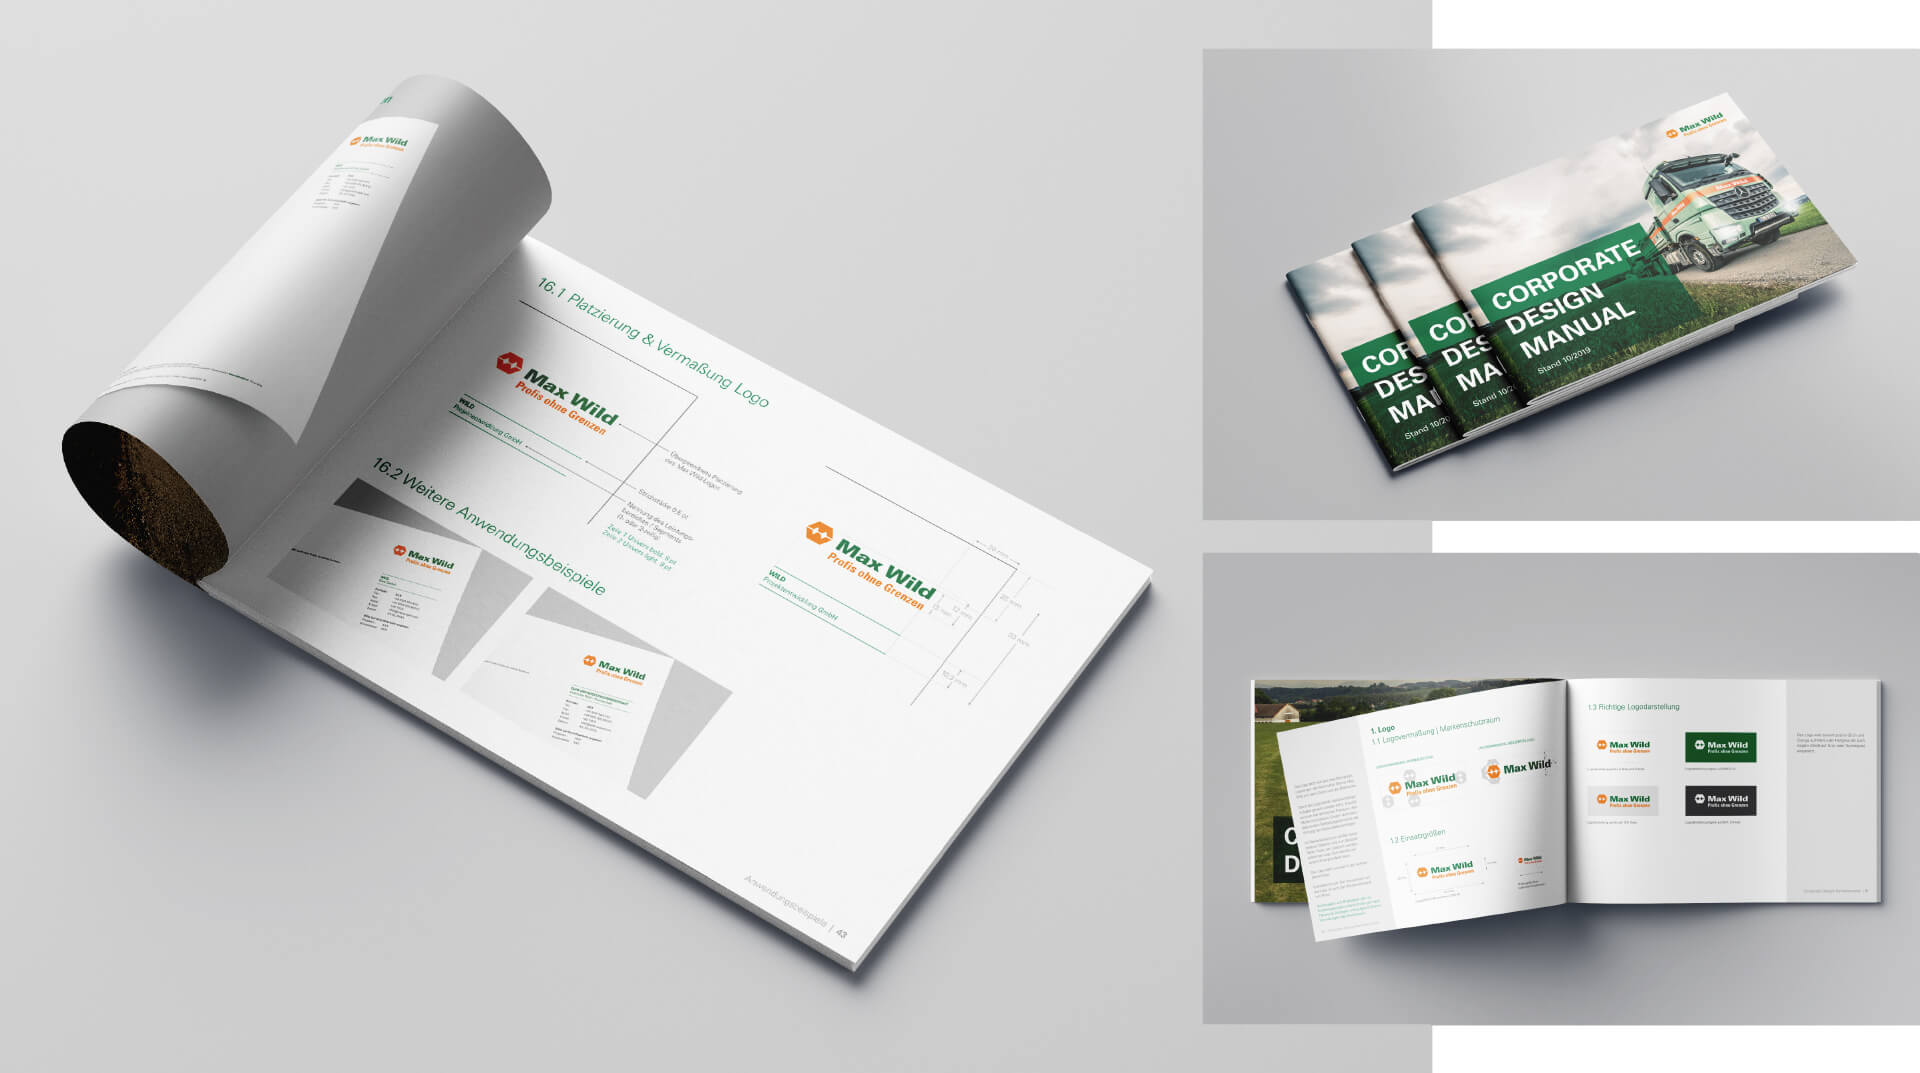 MaxWild_Style Guide_Corporate_Design_B2B_Markenkommunikation